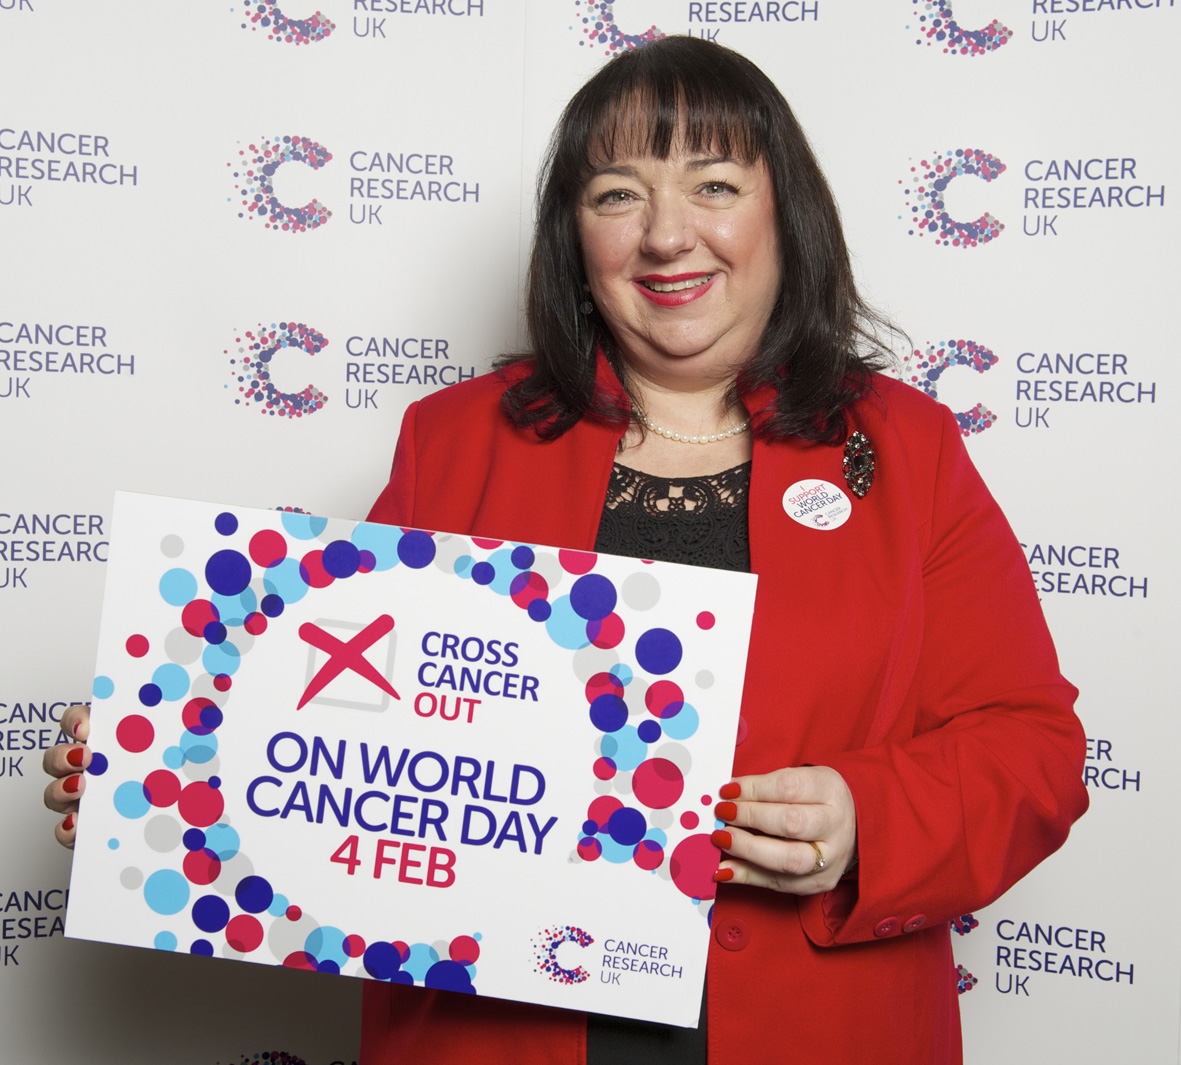 Sharon Hodgson MP supports Cancer Research UKs Cross Cancer Out campaign